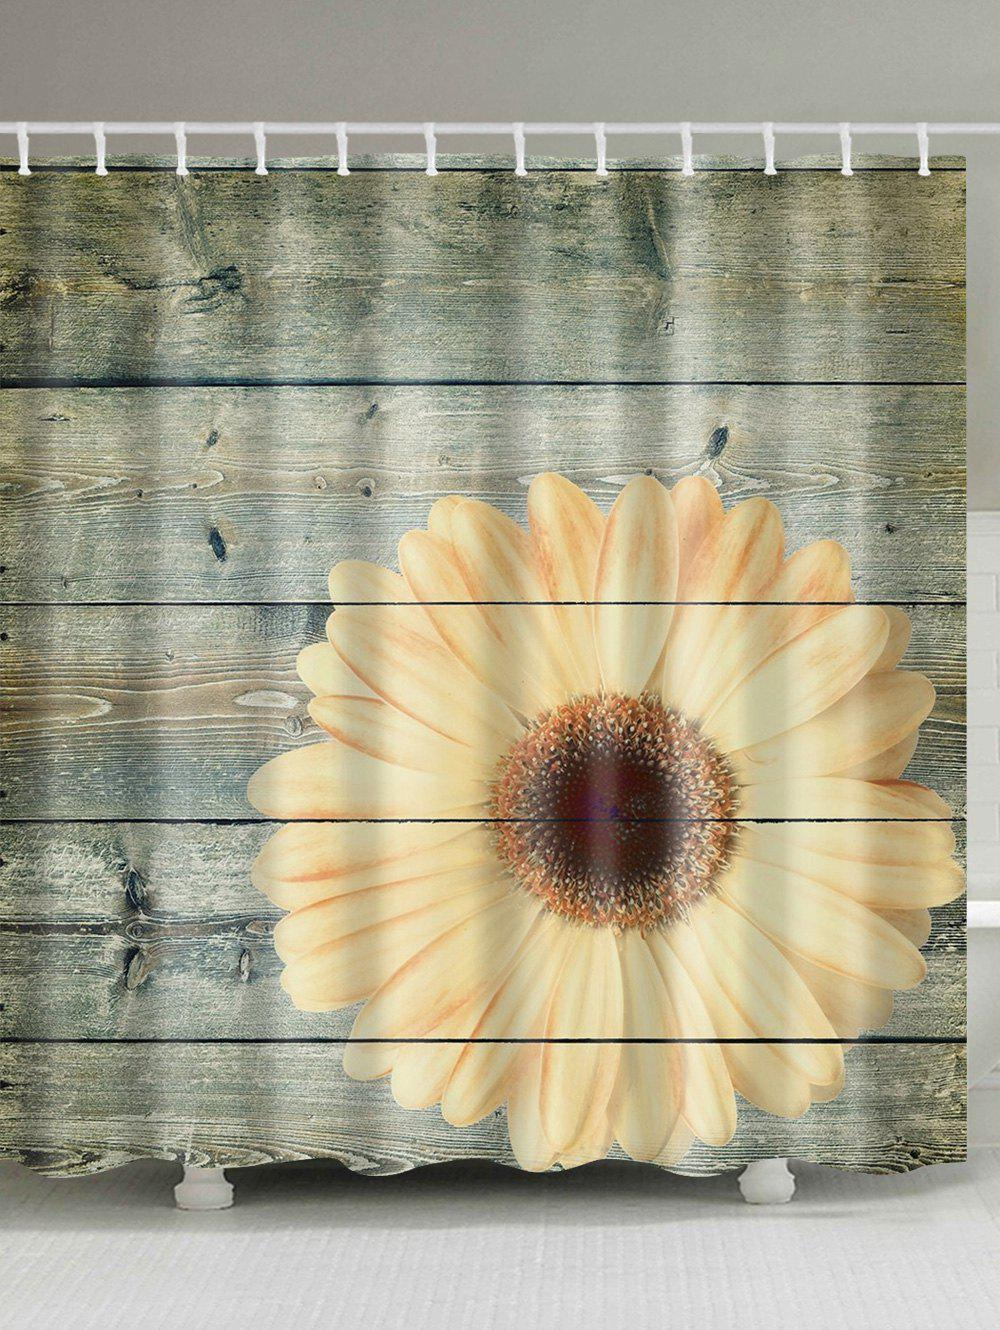 Sale Plank Sunflower Shower Curtain Bathroom Decor